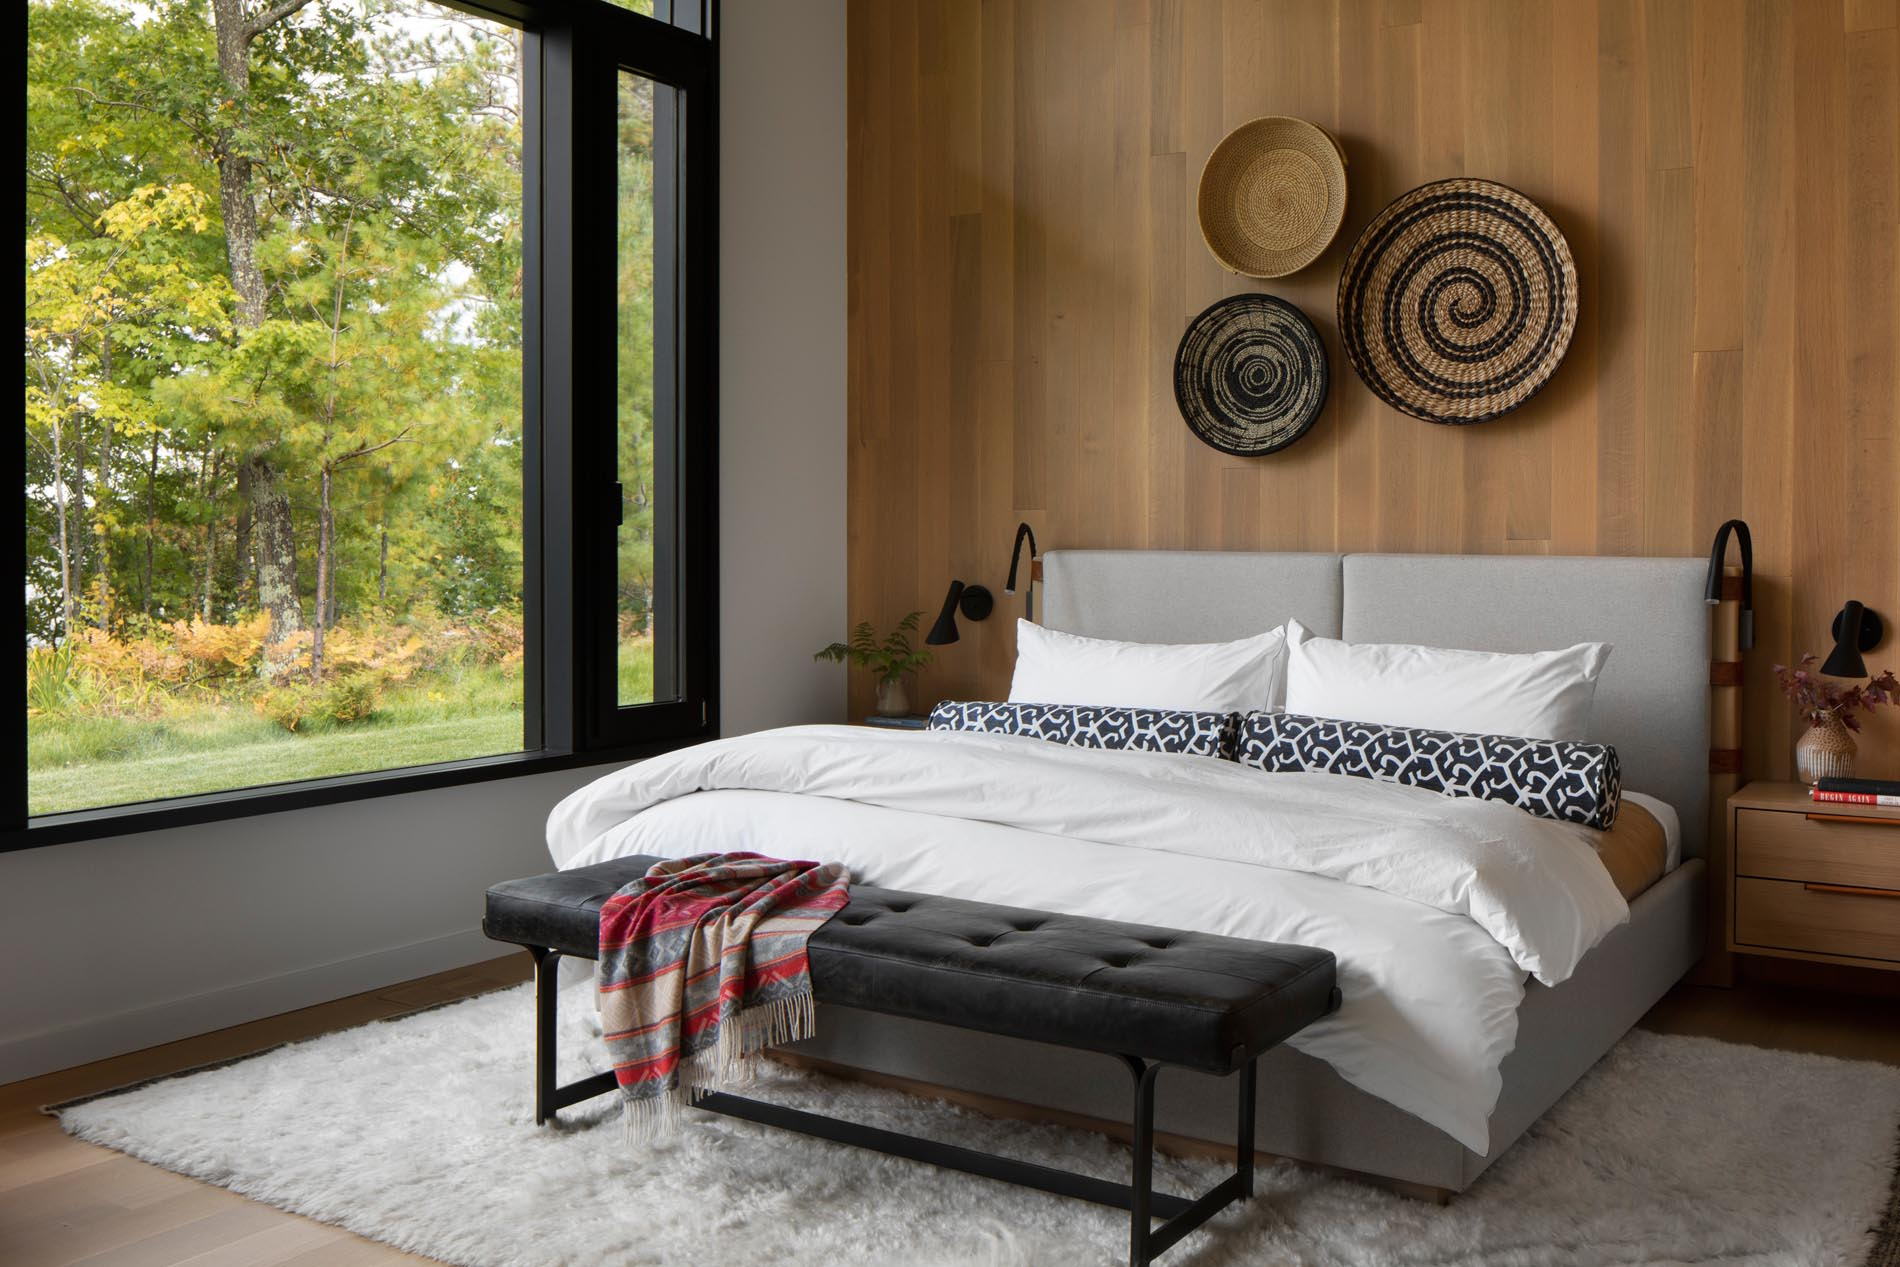 This modern bedroom has a floor-to-ceiling wood accent wall adorned with woven baskets, provides a backdrop for an upholstered gray bed.